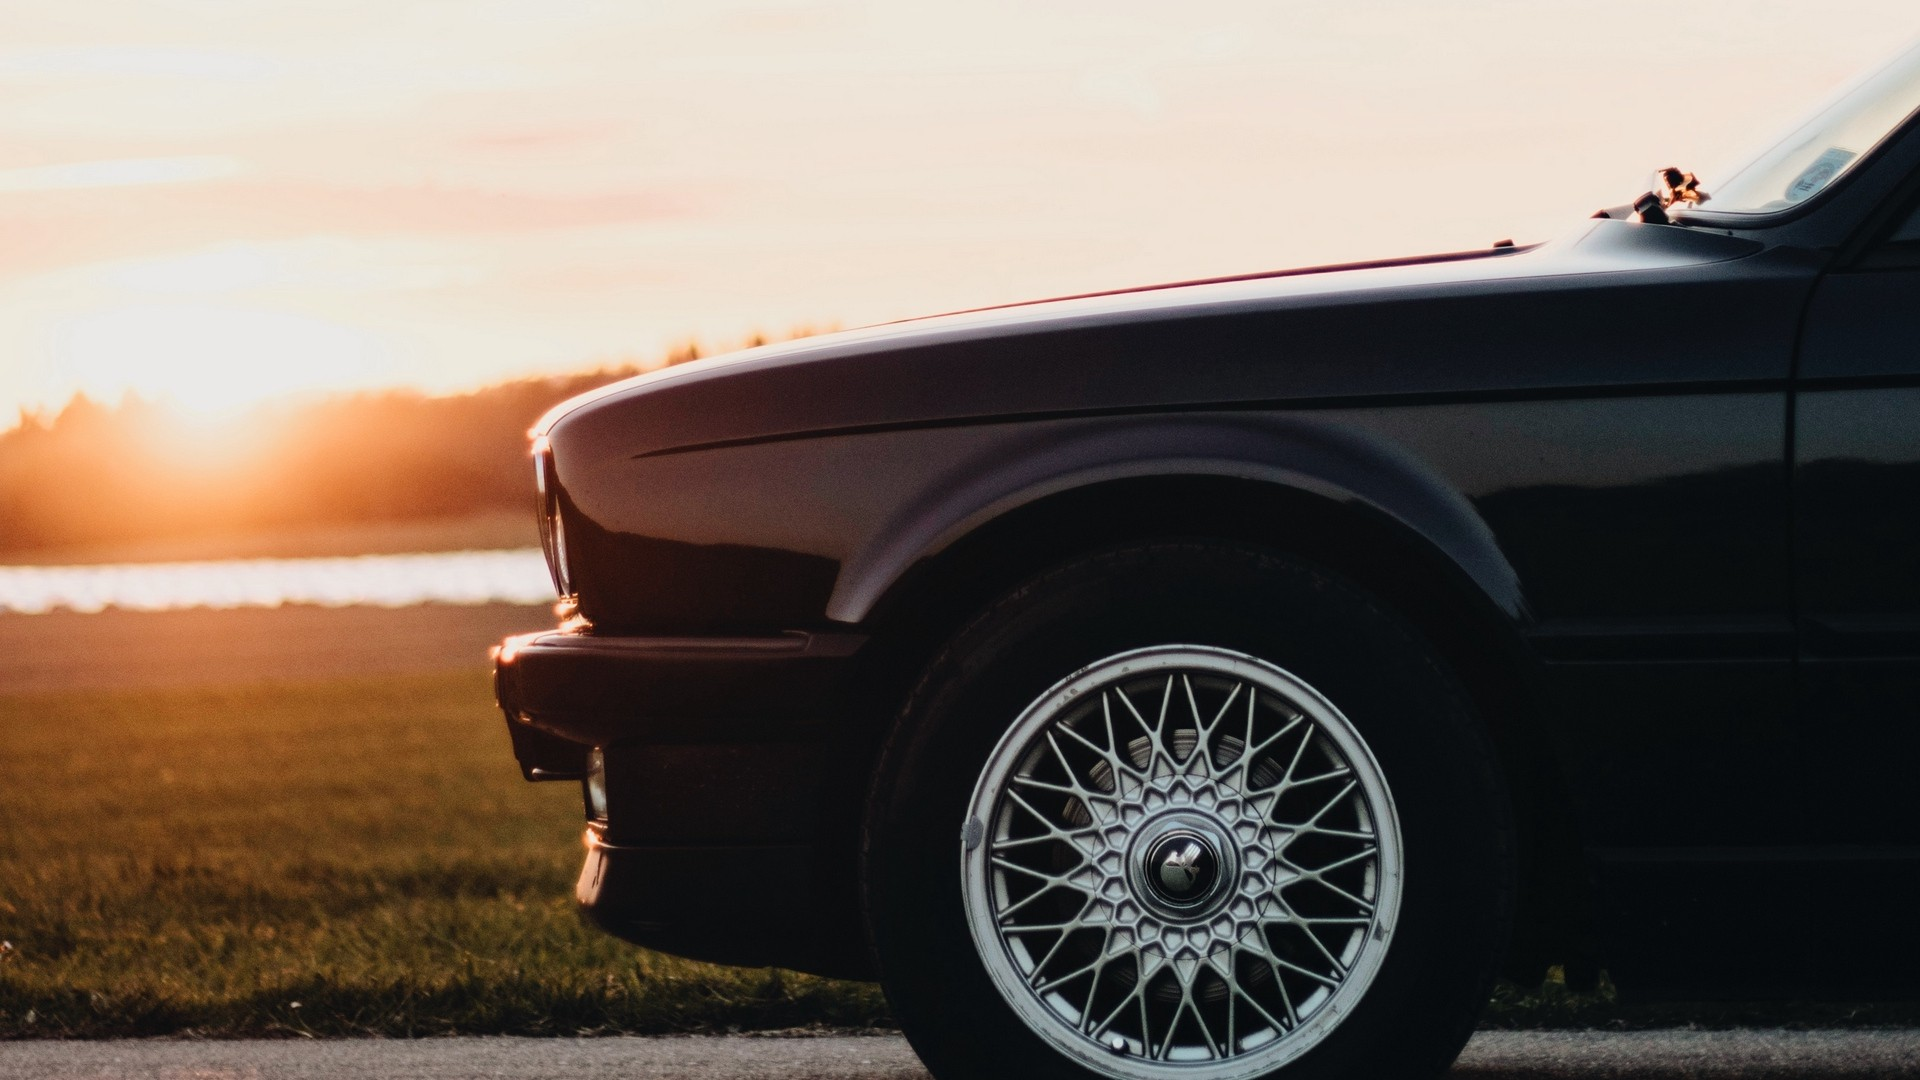 Bmw E30 Hd Wallpaper Iphone 7 Plus Iphone 8 Plus Hd Wallpaper Wallpapers Net